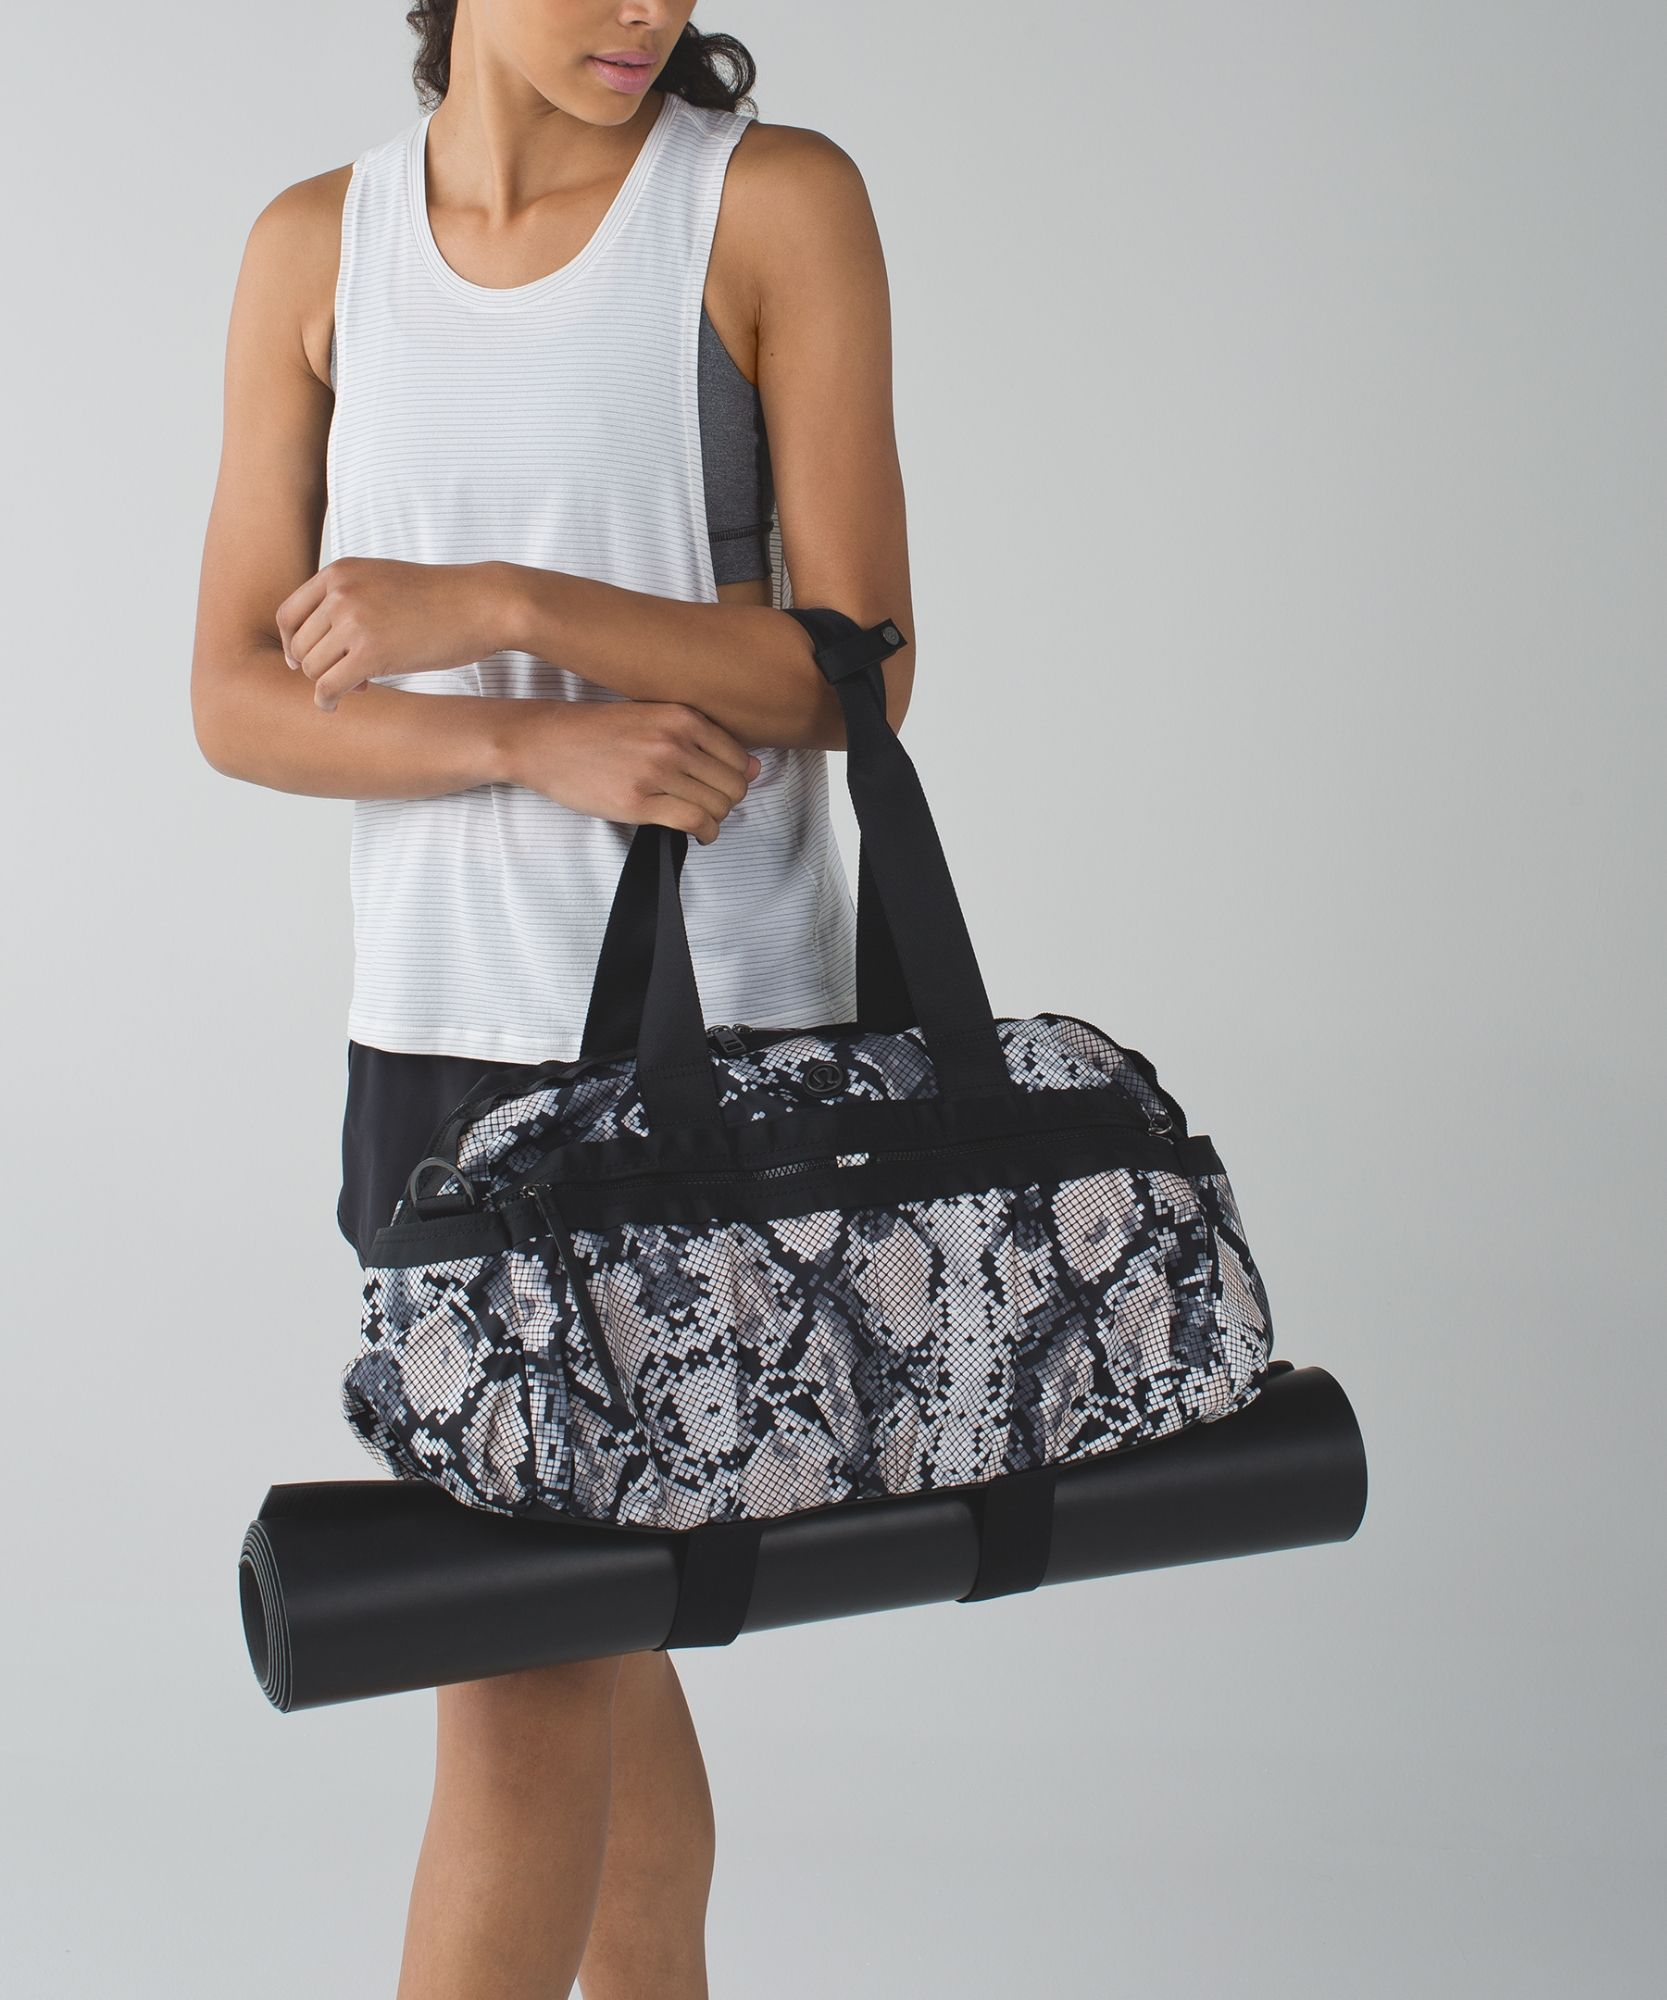 We designed this lightweight, medium-sized duffel for the busy gal on the go. The locker room-friendly  polyester fabric makes wipe-downs a breeze and exterior pockets help air out our sweaty gear. Think of it as our answer to the smelly hockey bag.